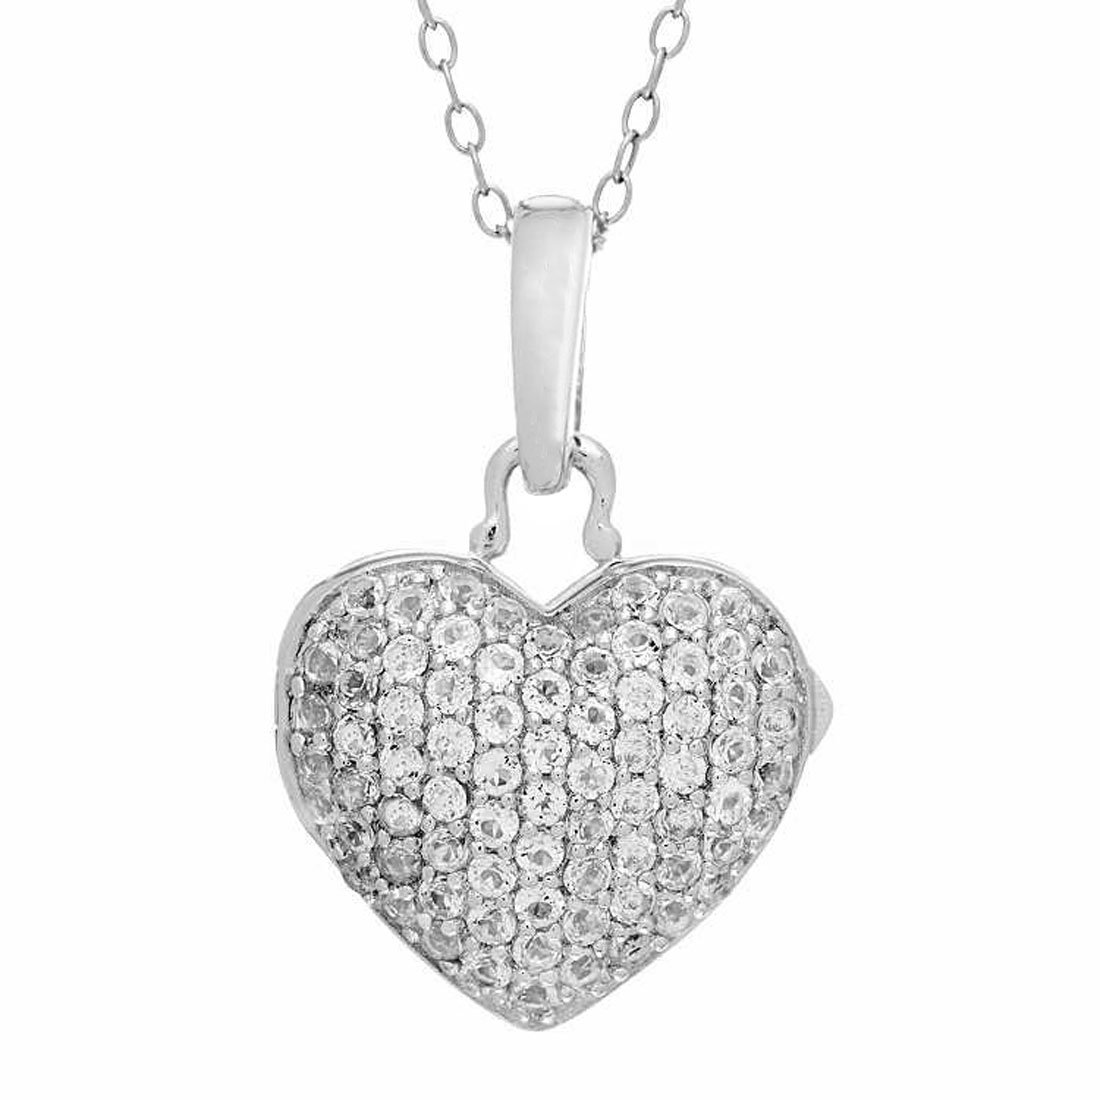 Sterling Silver-White Topaz-Heart Shaped-Custom Photo Locket Necklace-18-inch chain-The Carly by With You Lockets